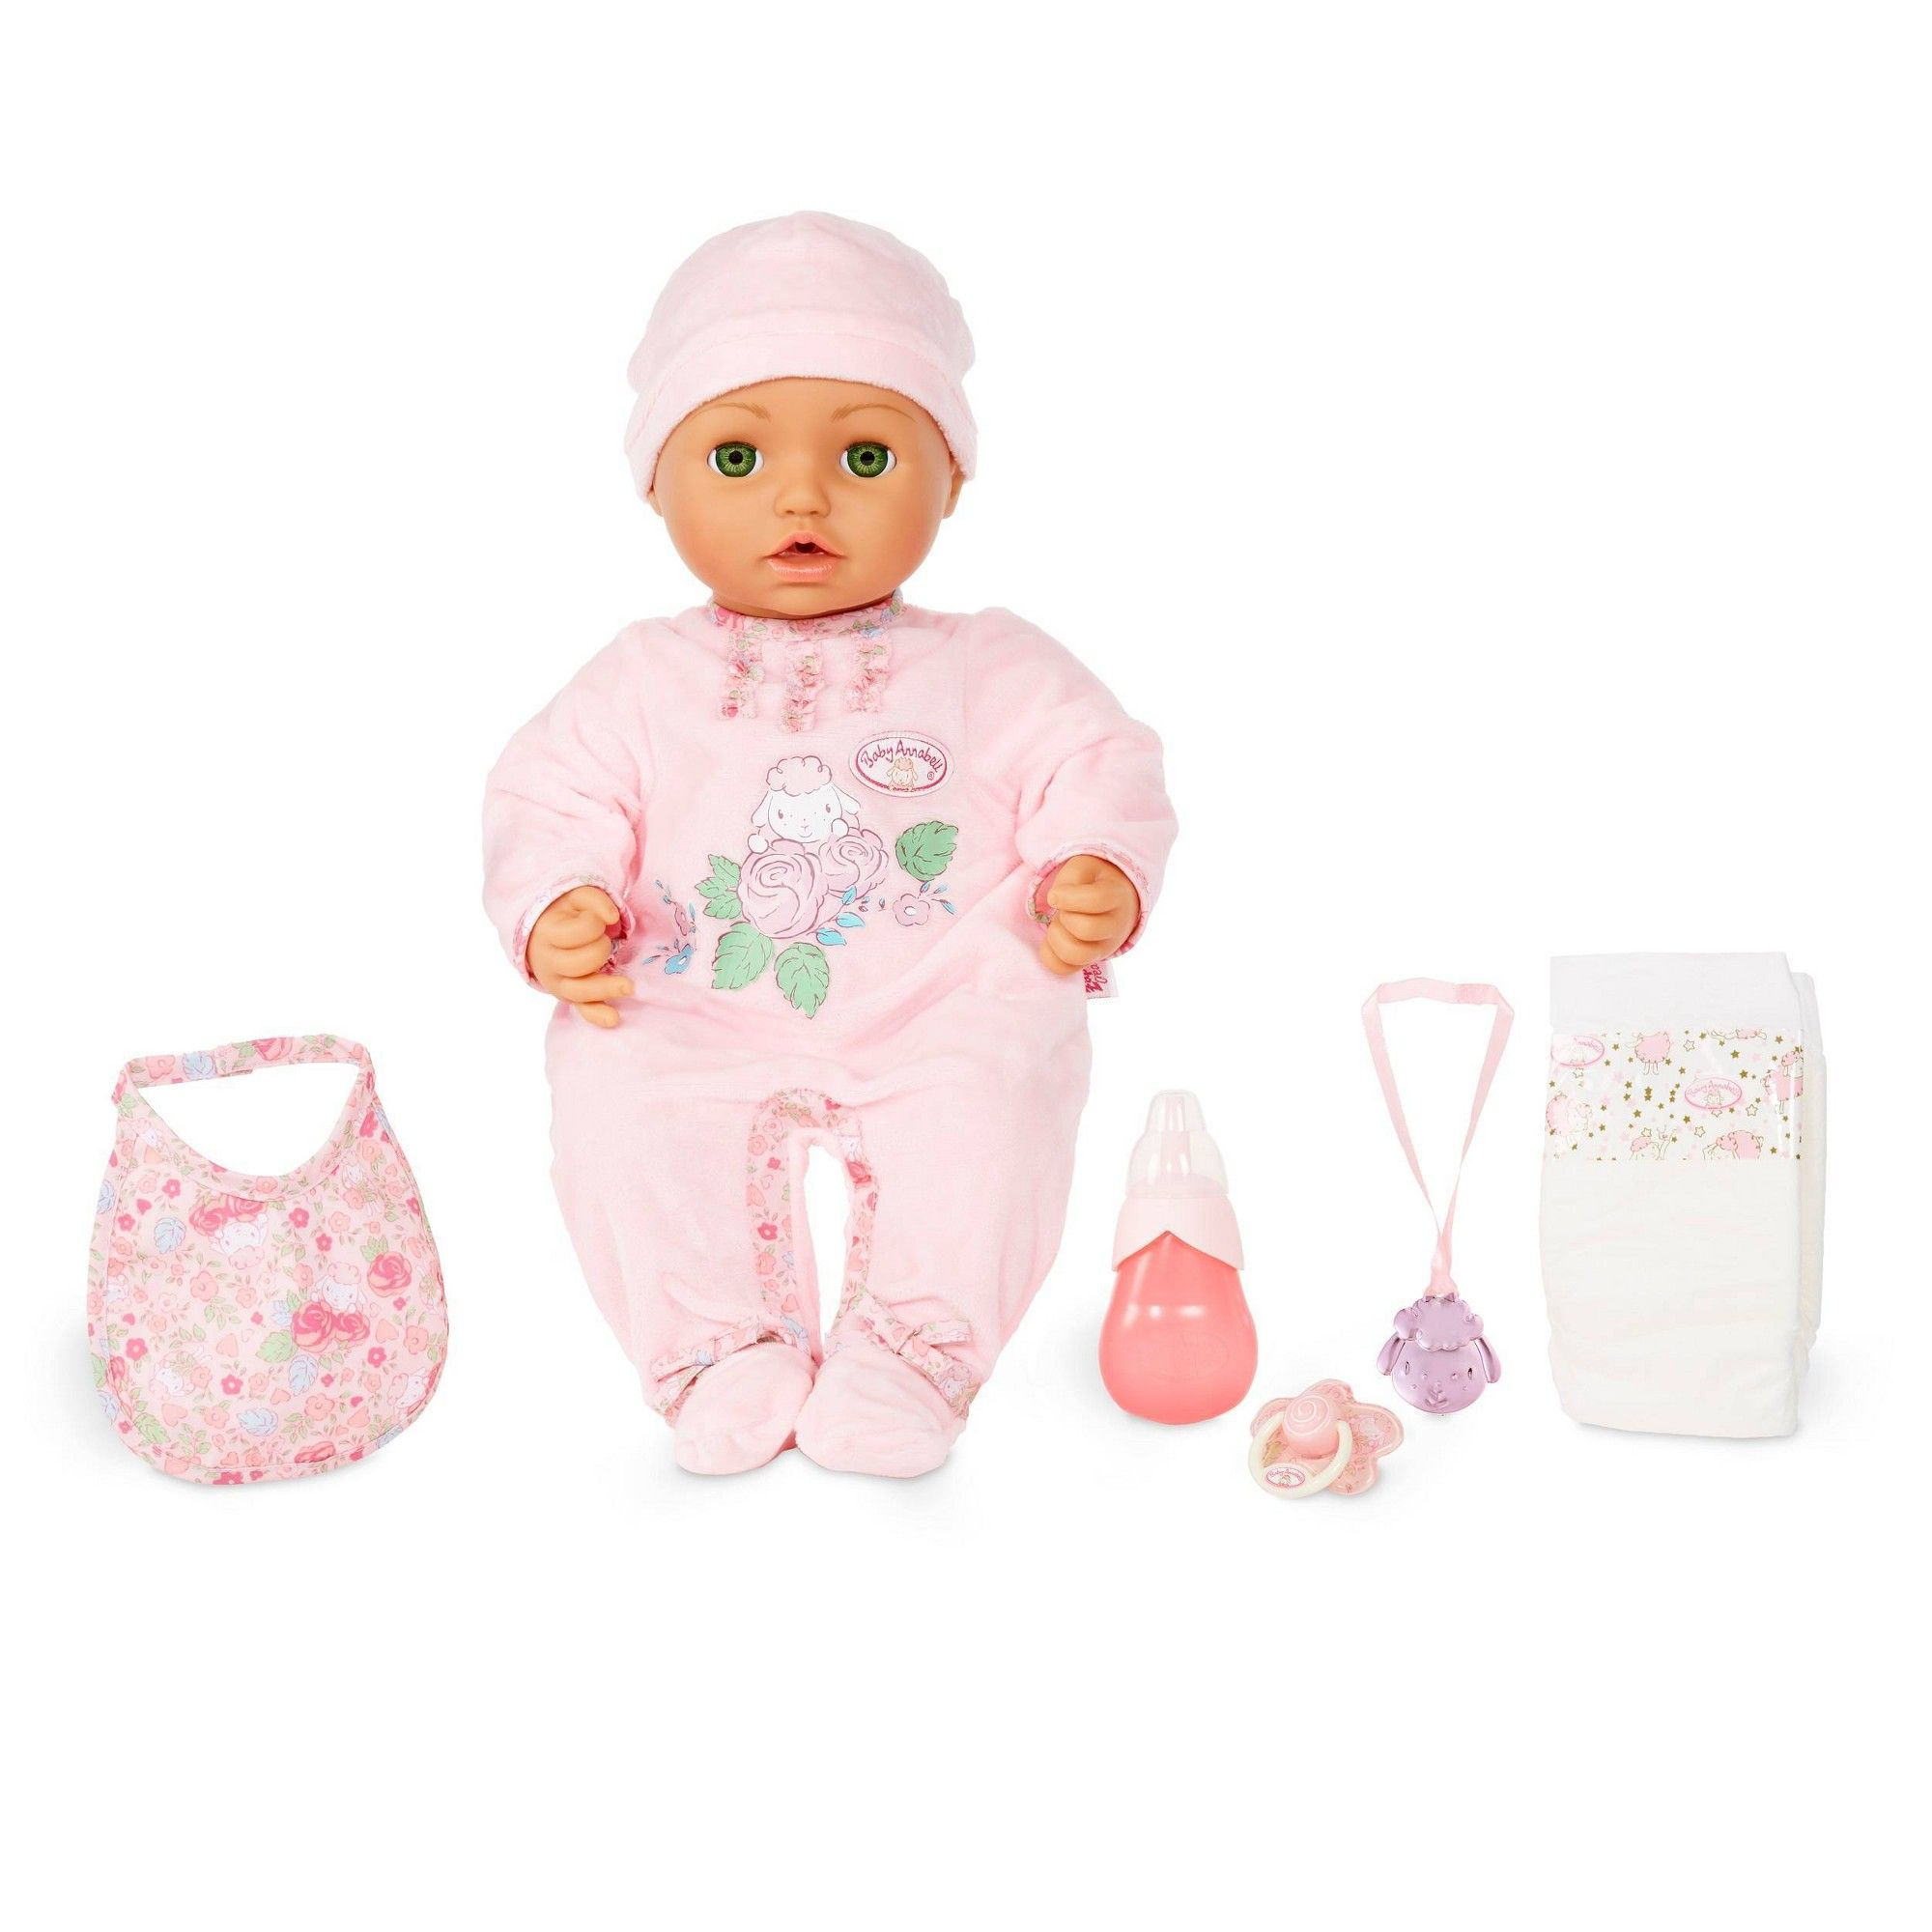 Baby Annabell with Green Eyes SoftBodied Baby Doll Baby